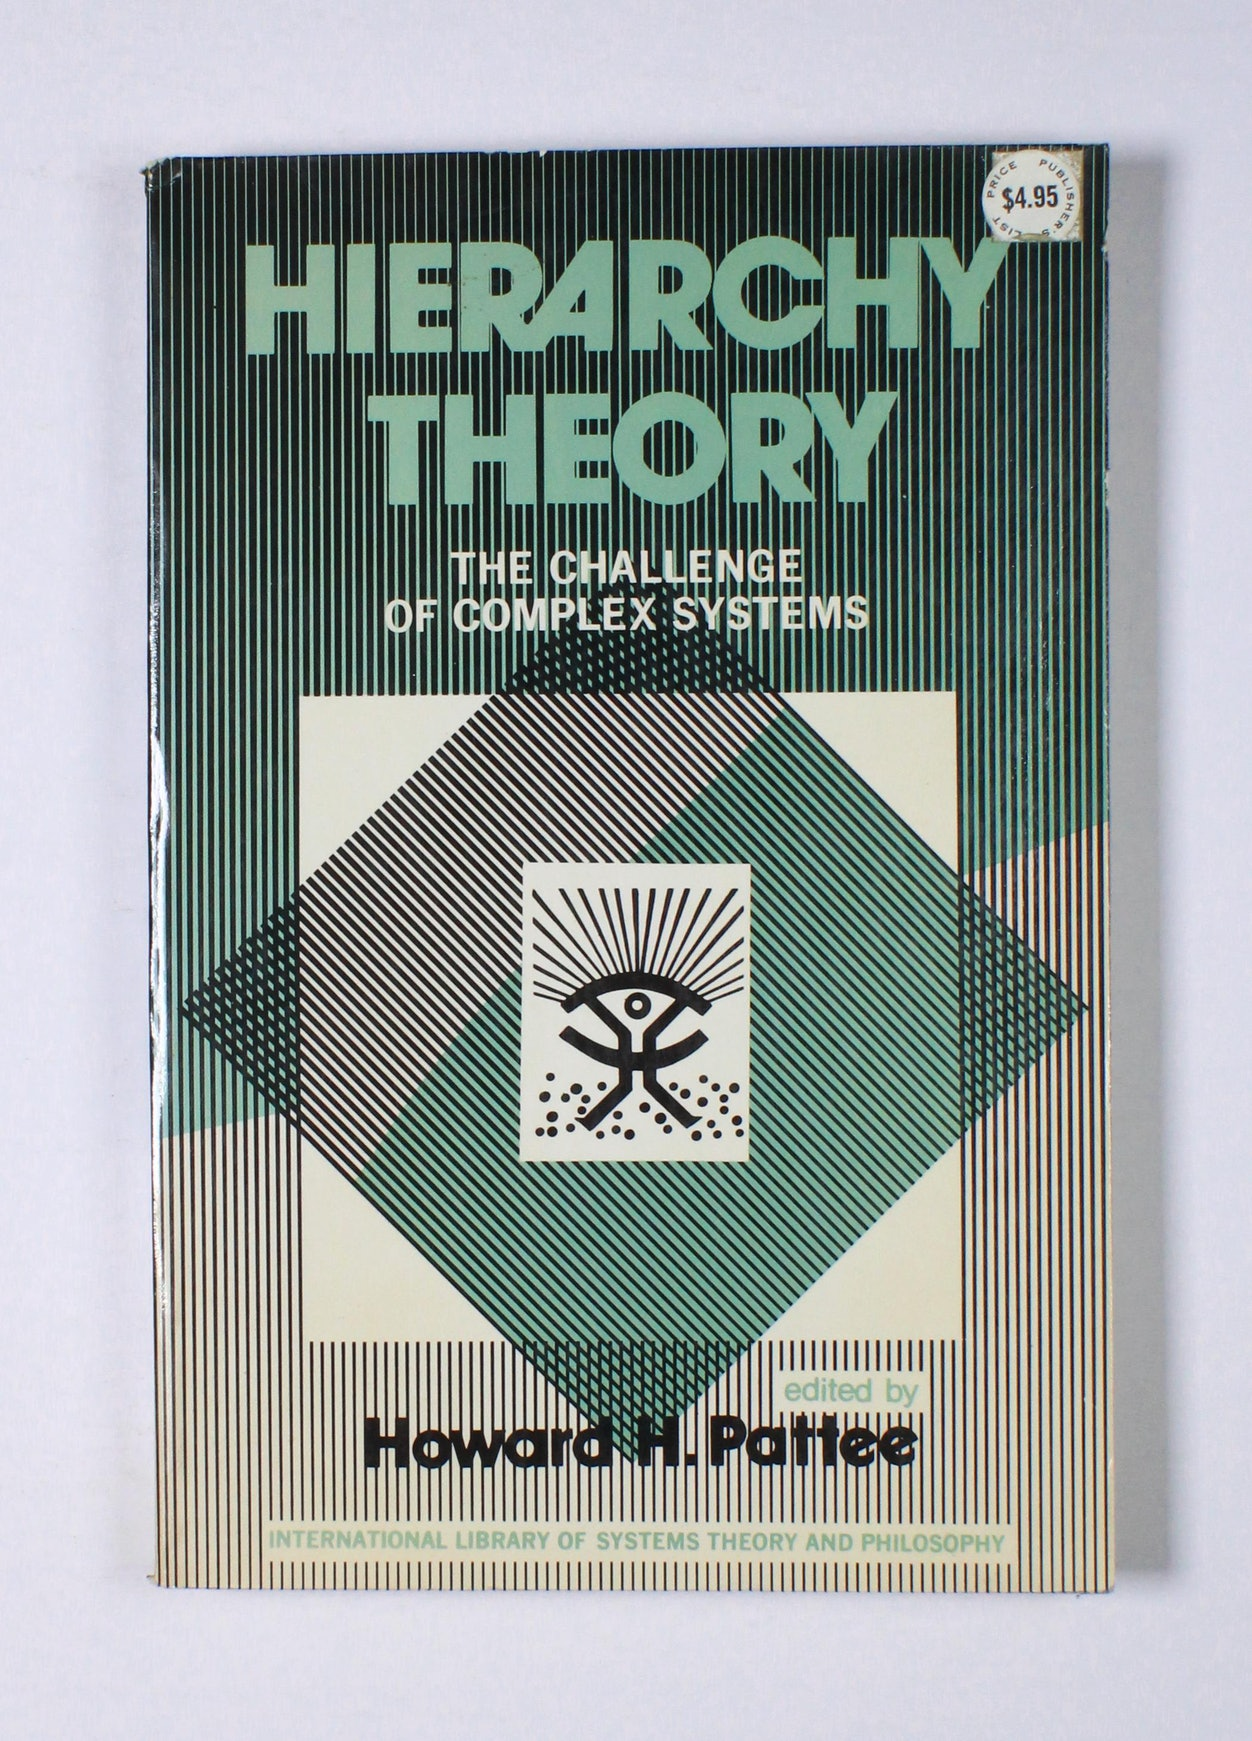 Hierarchy Theory: The Challenge of Complex Systems